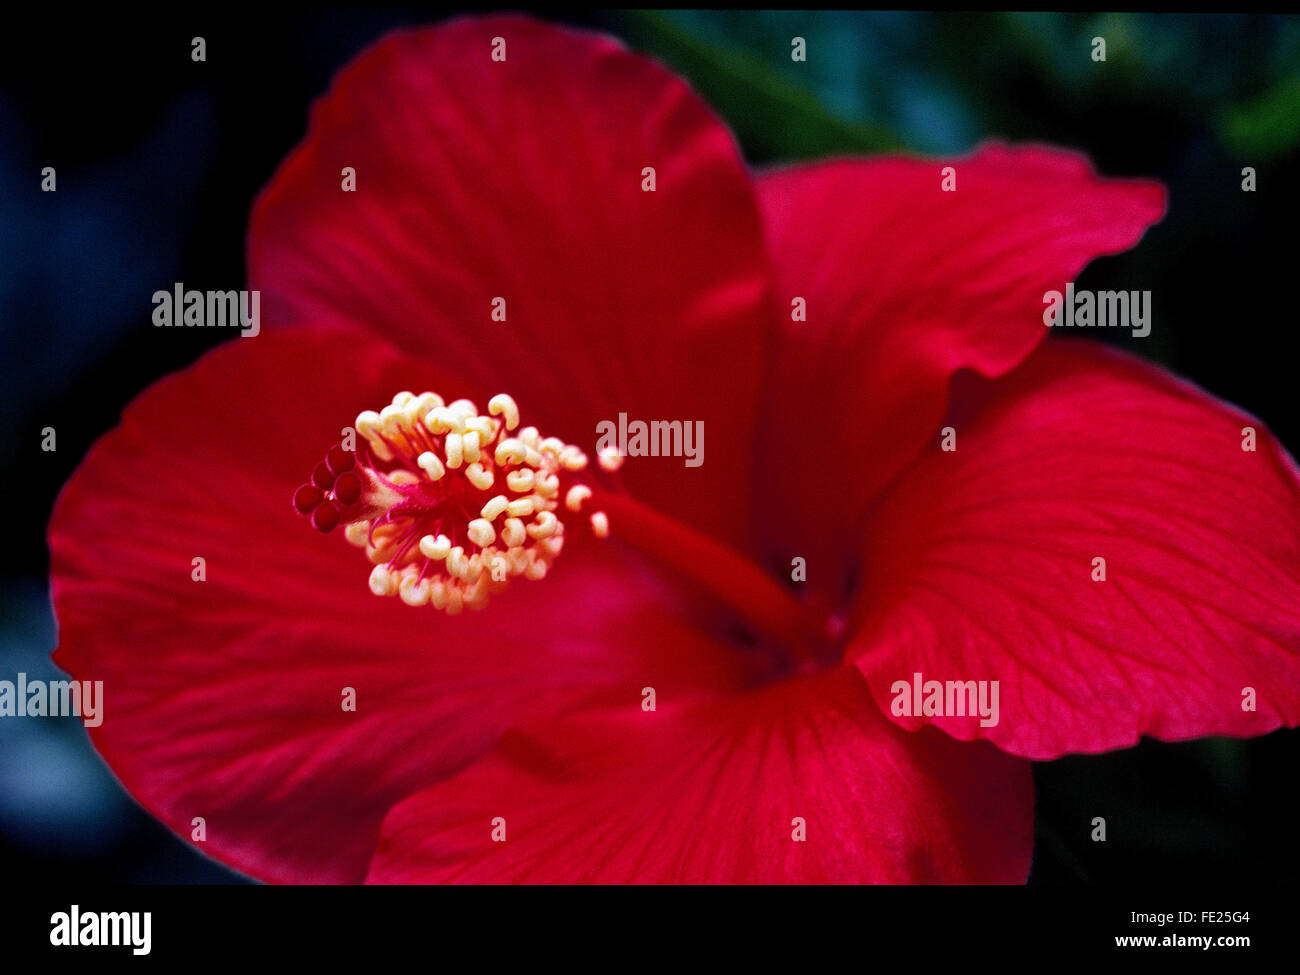 A close-up of a showy red Hibiscus flower with its prominent pistil and stamen. The hibiscus genus of flowering - Stock Image